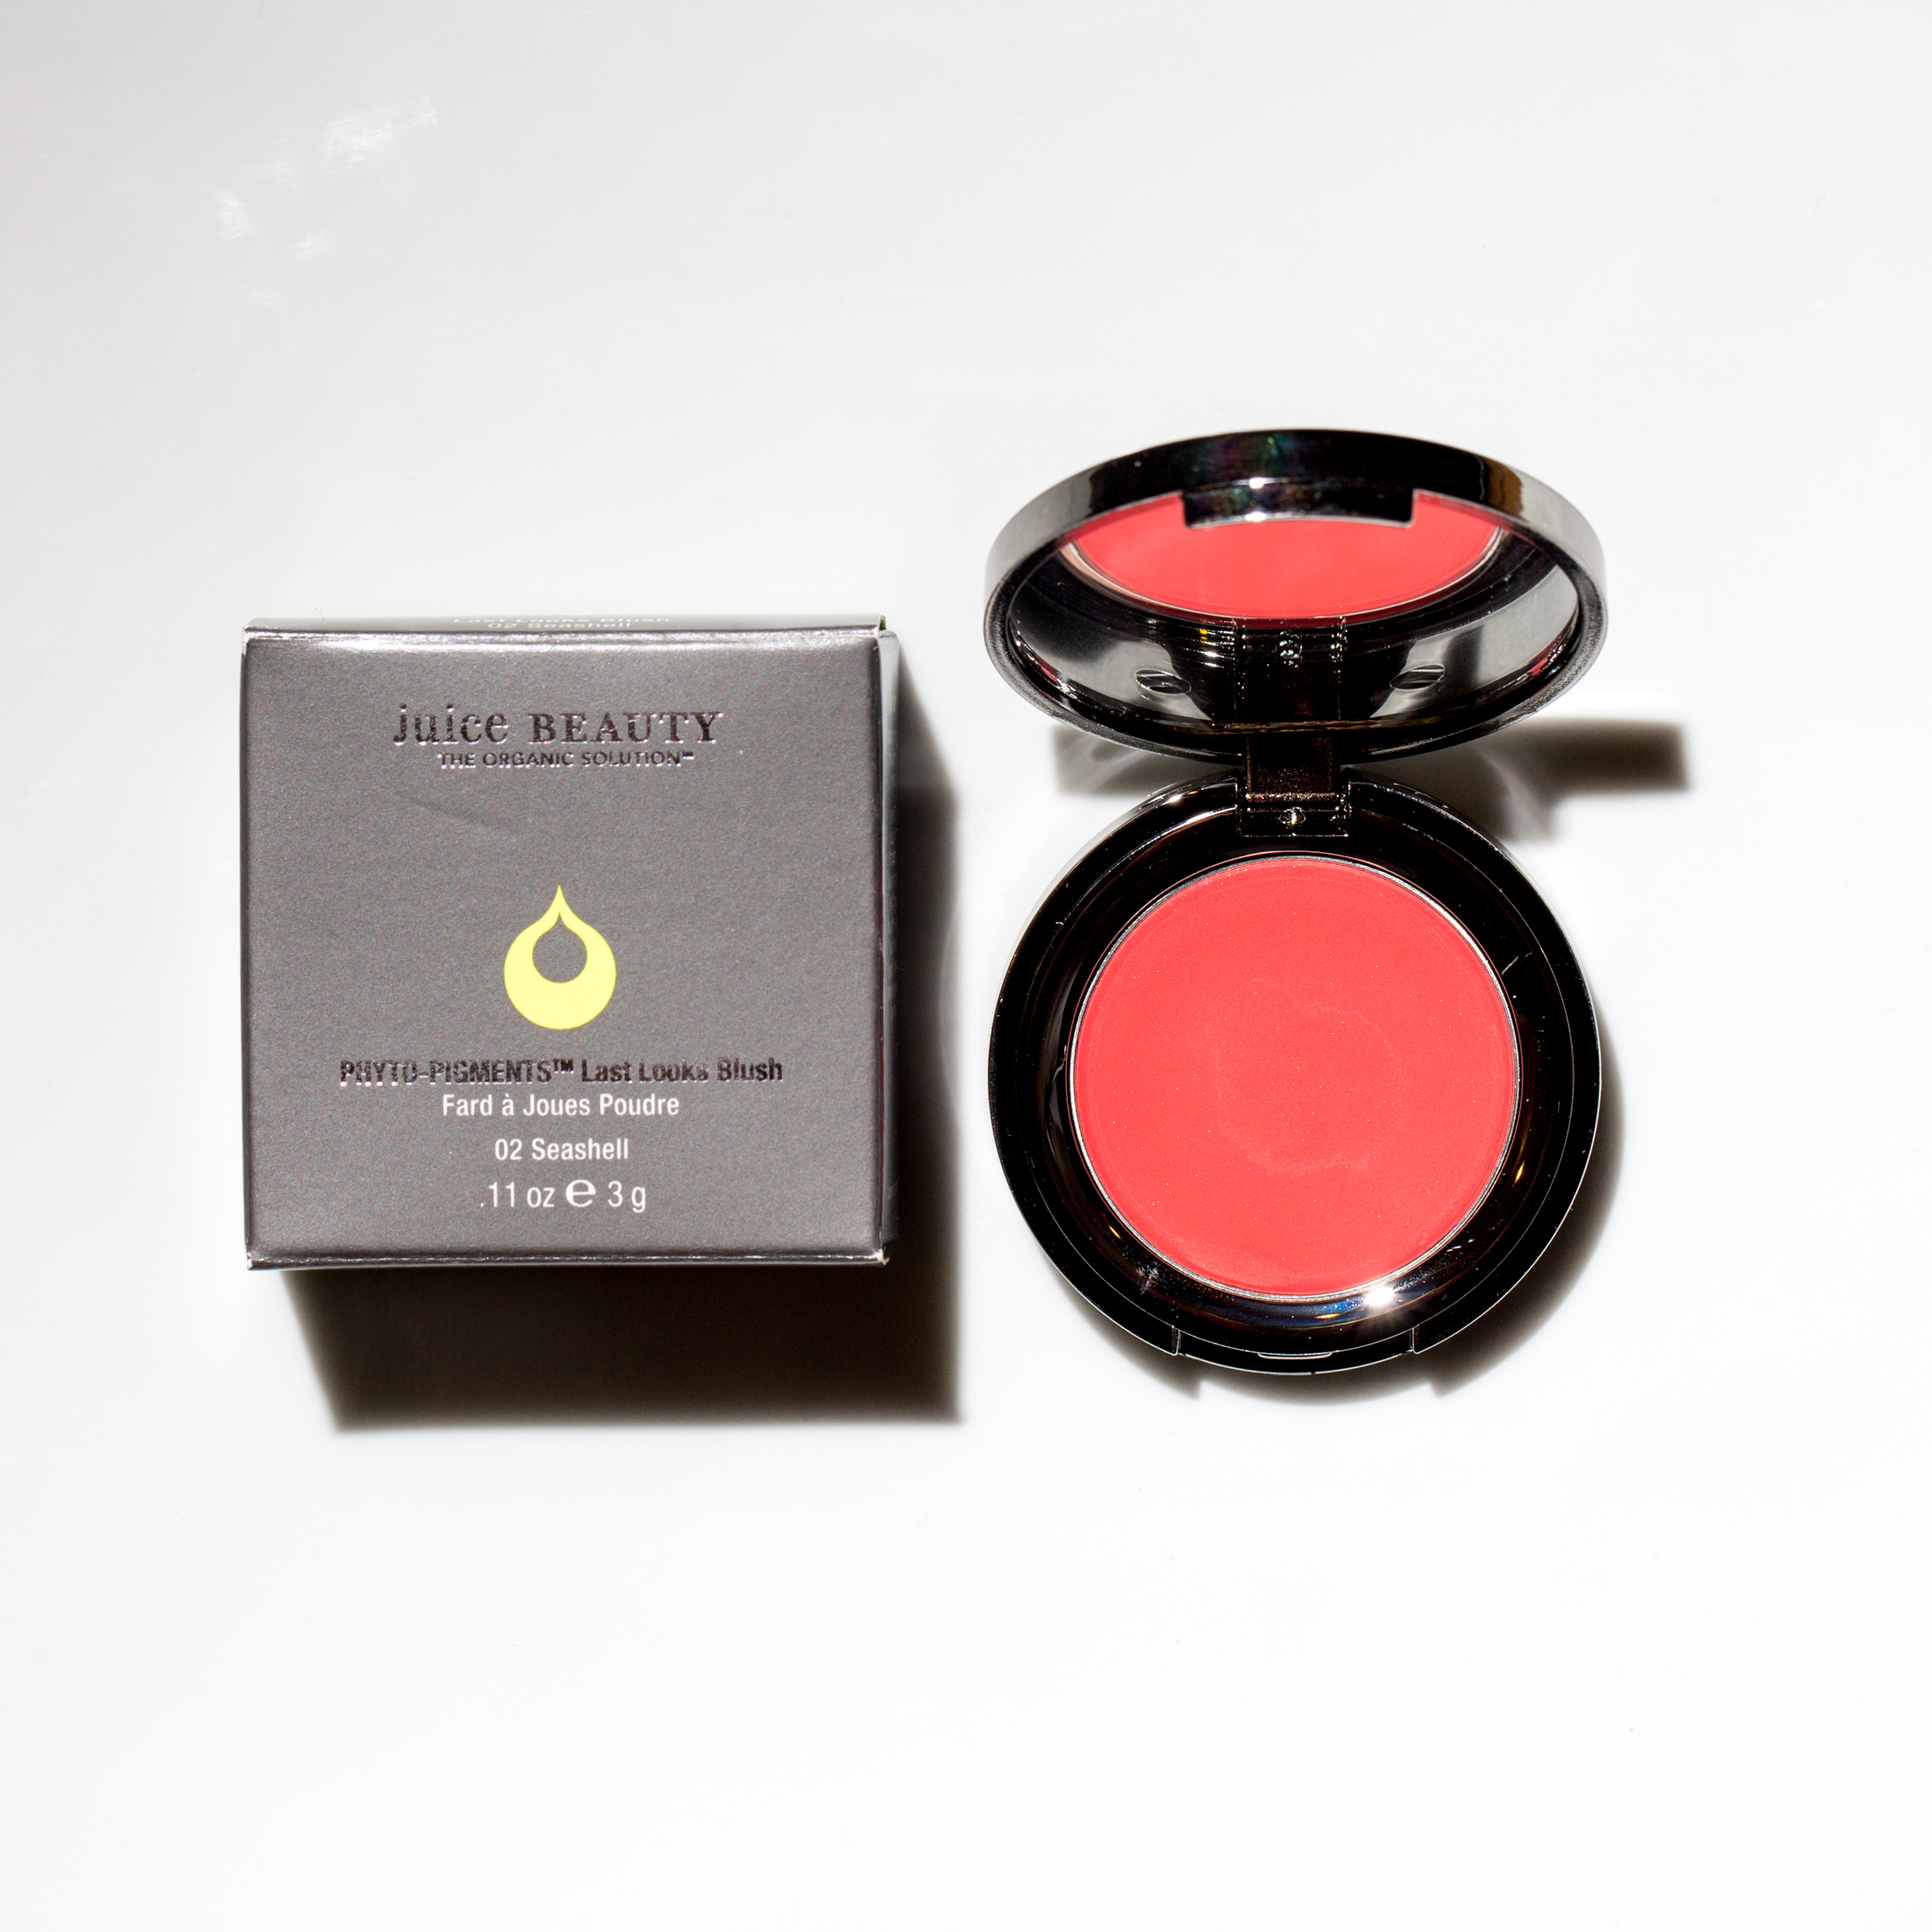 Juice Beauty Last Looks Blush in Seashell